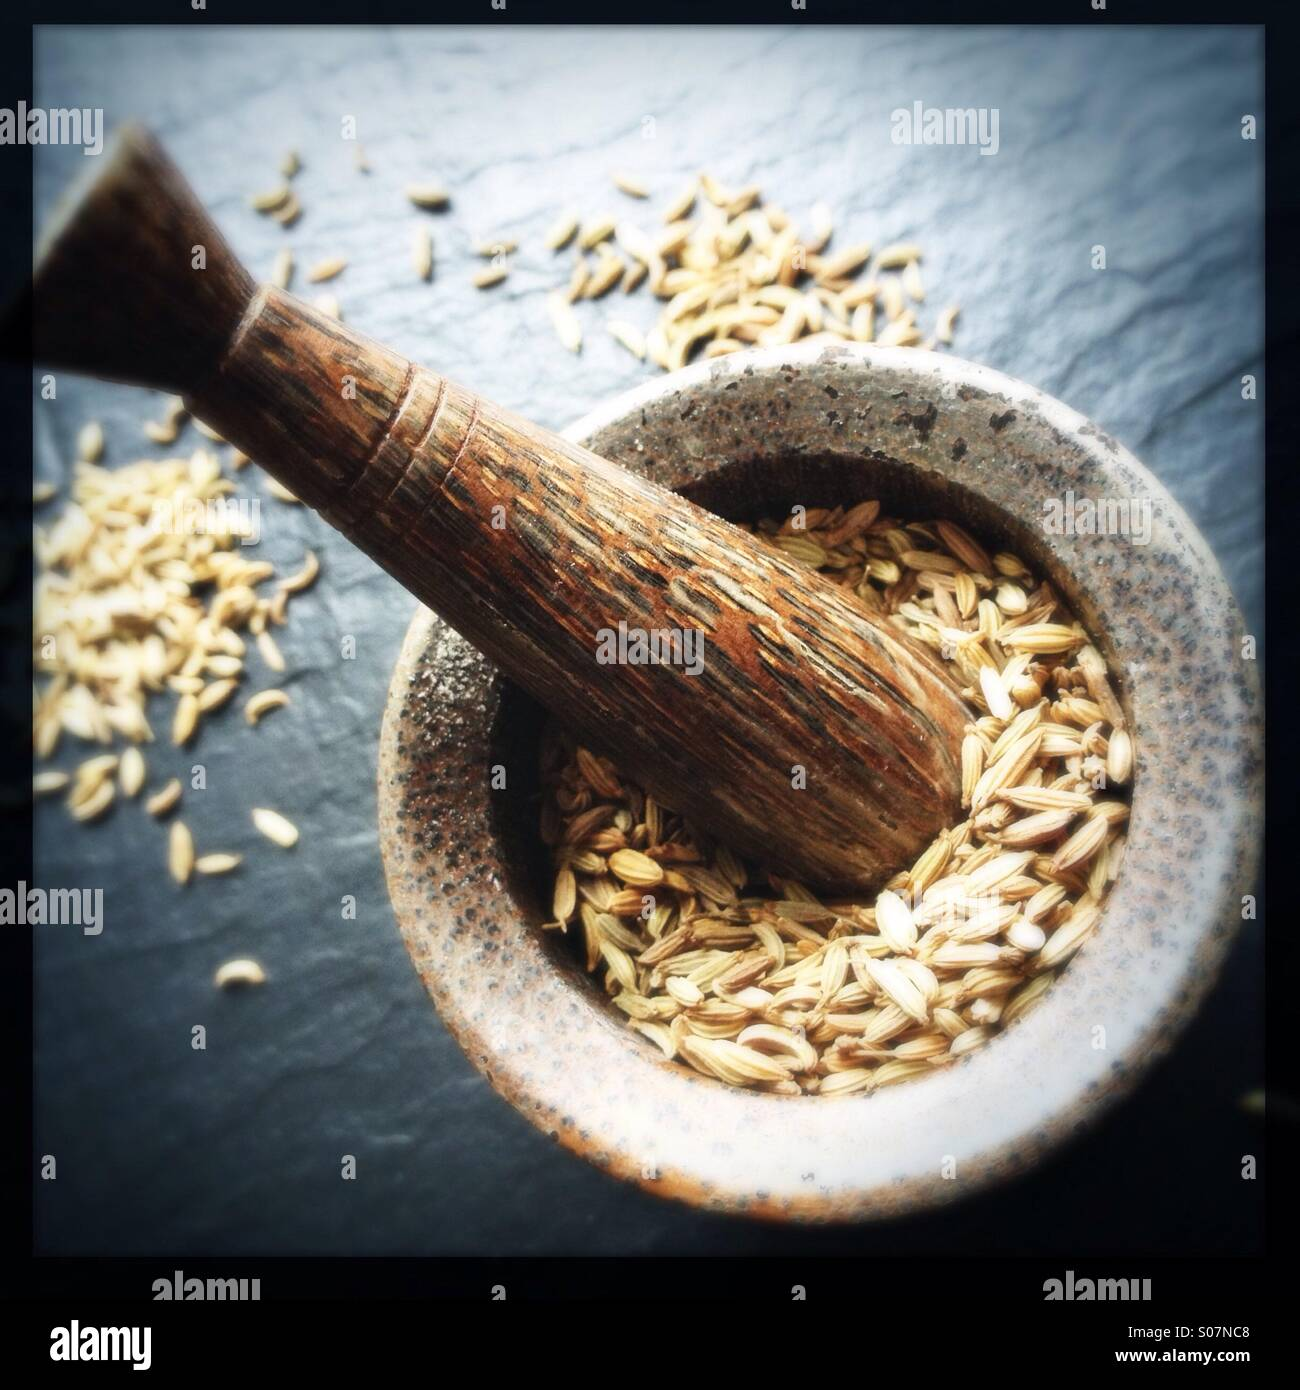 fennel-seeds-in-mortar-and-pestle-S07NC8